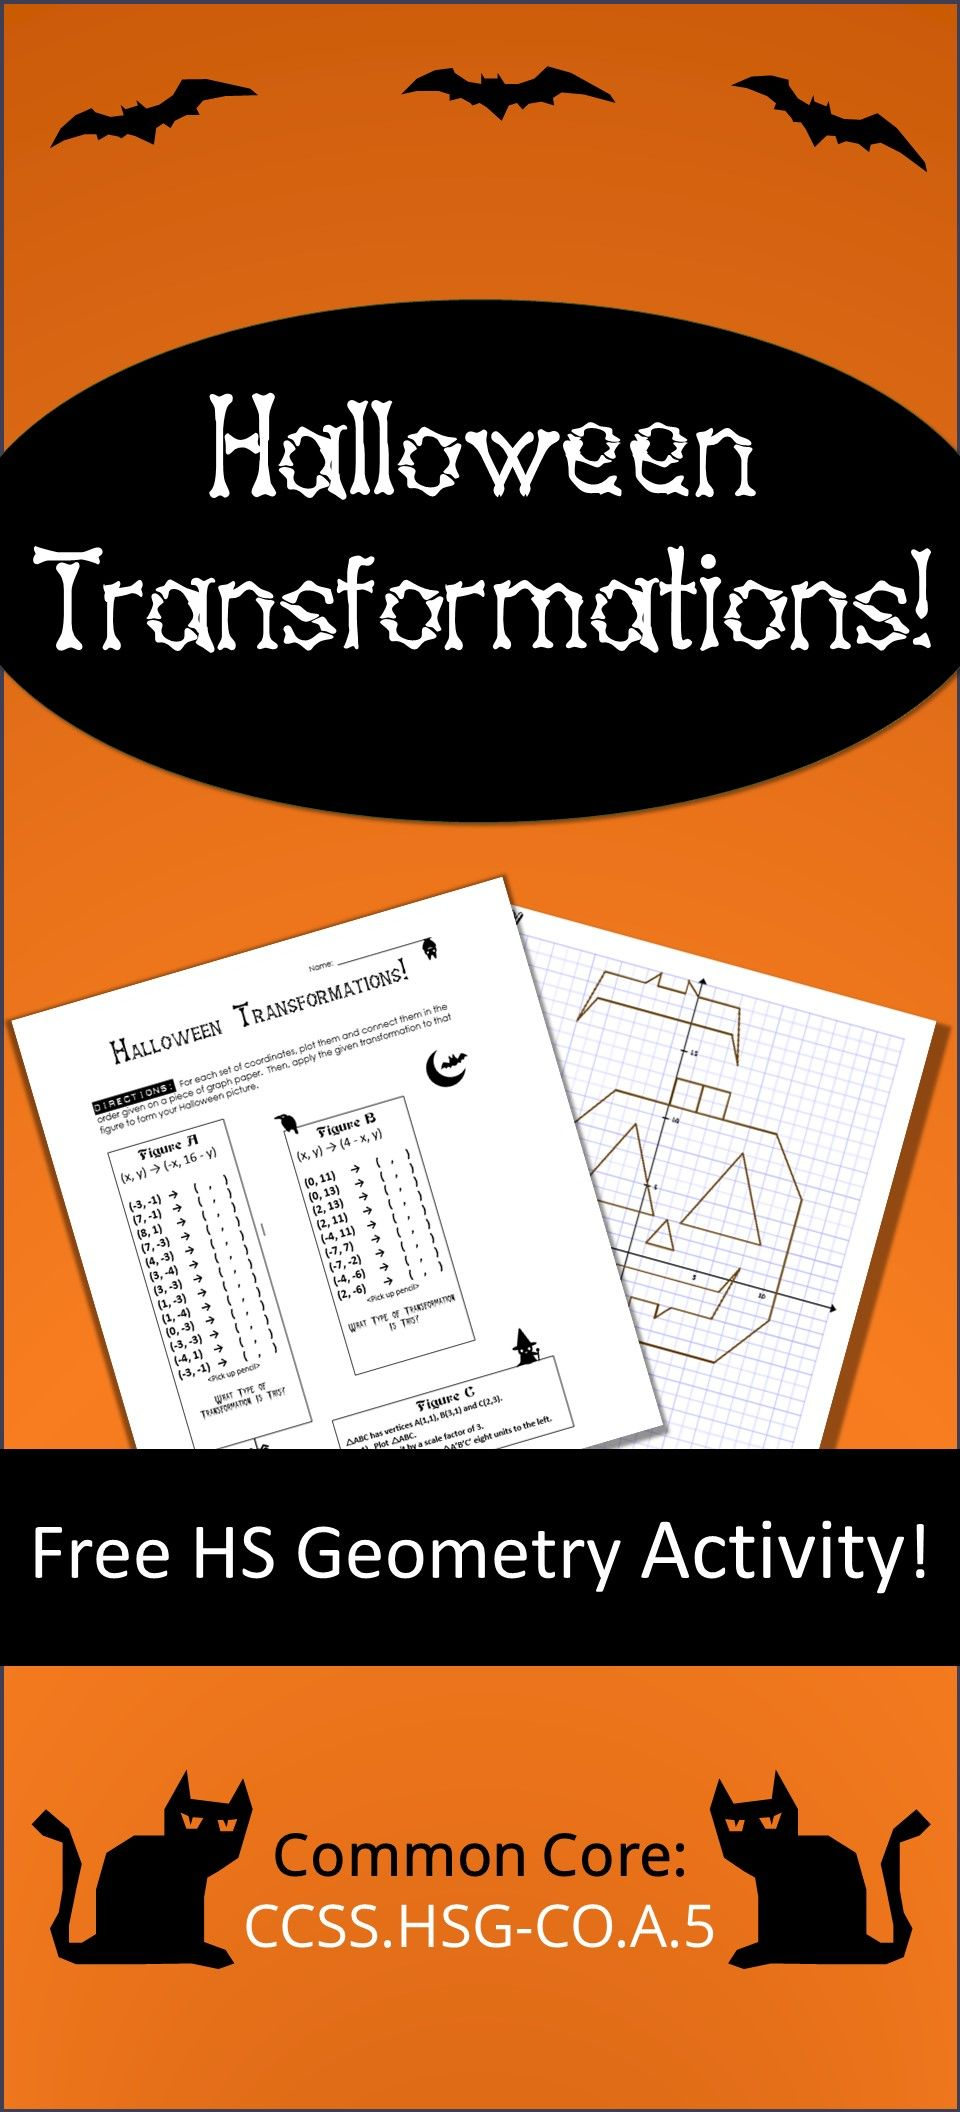 Free Halloween Transformations Activity For Hs Geometry Students